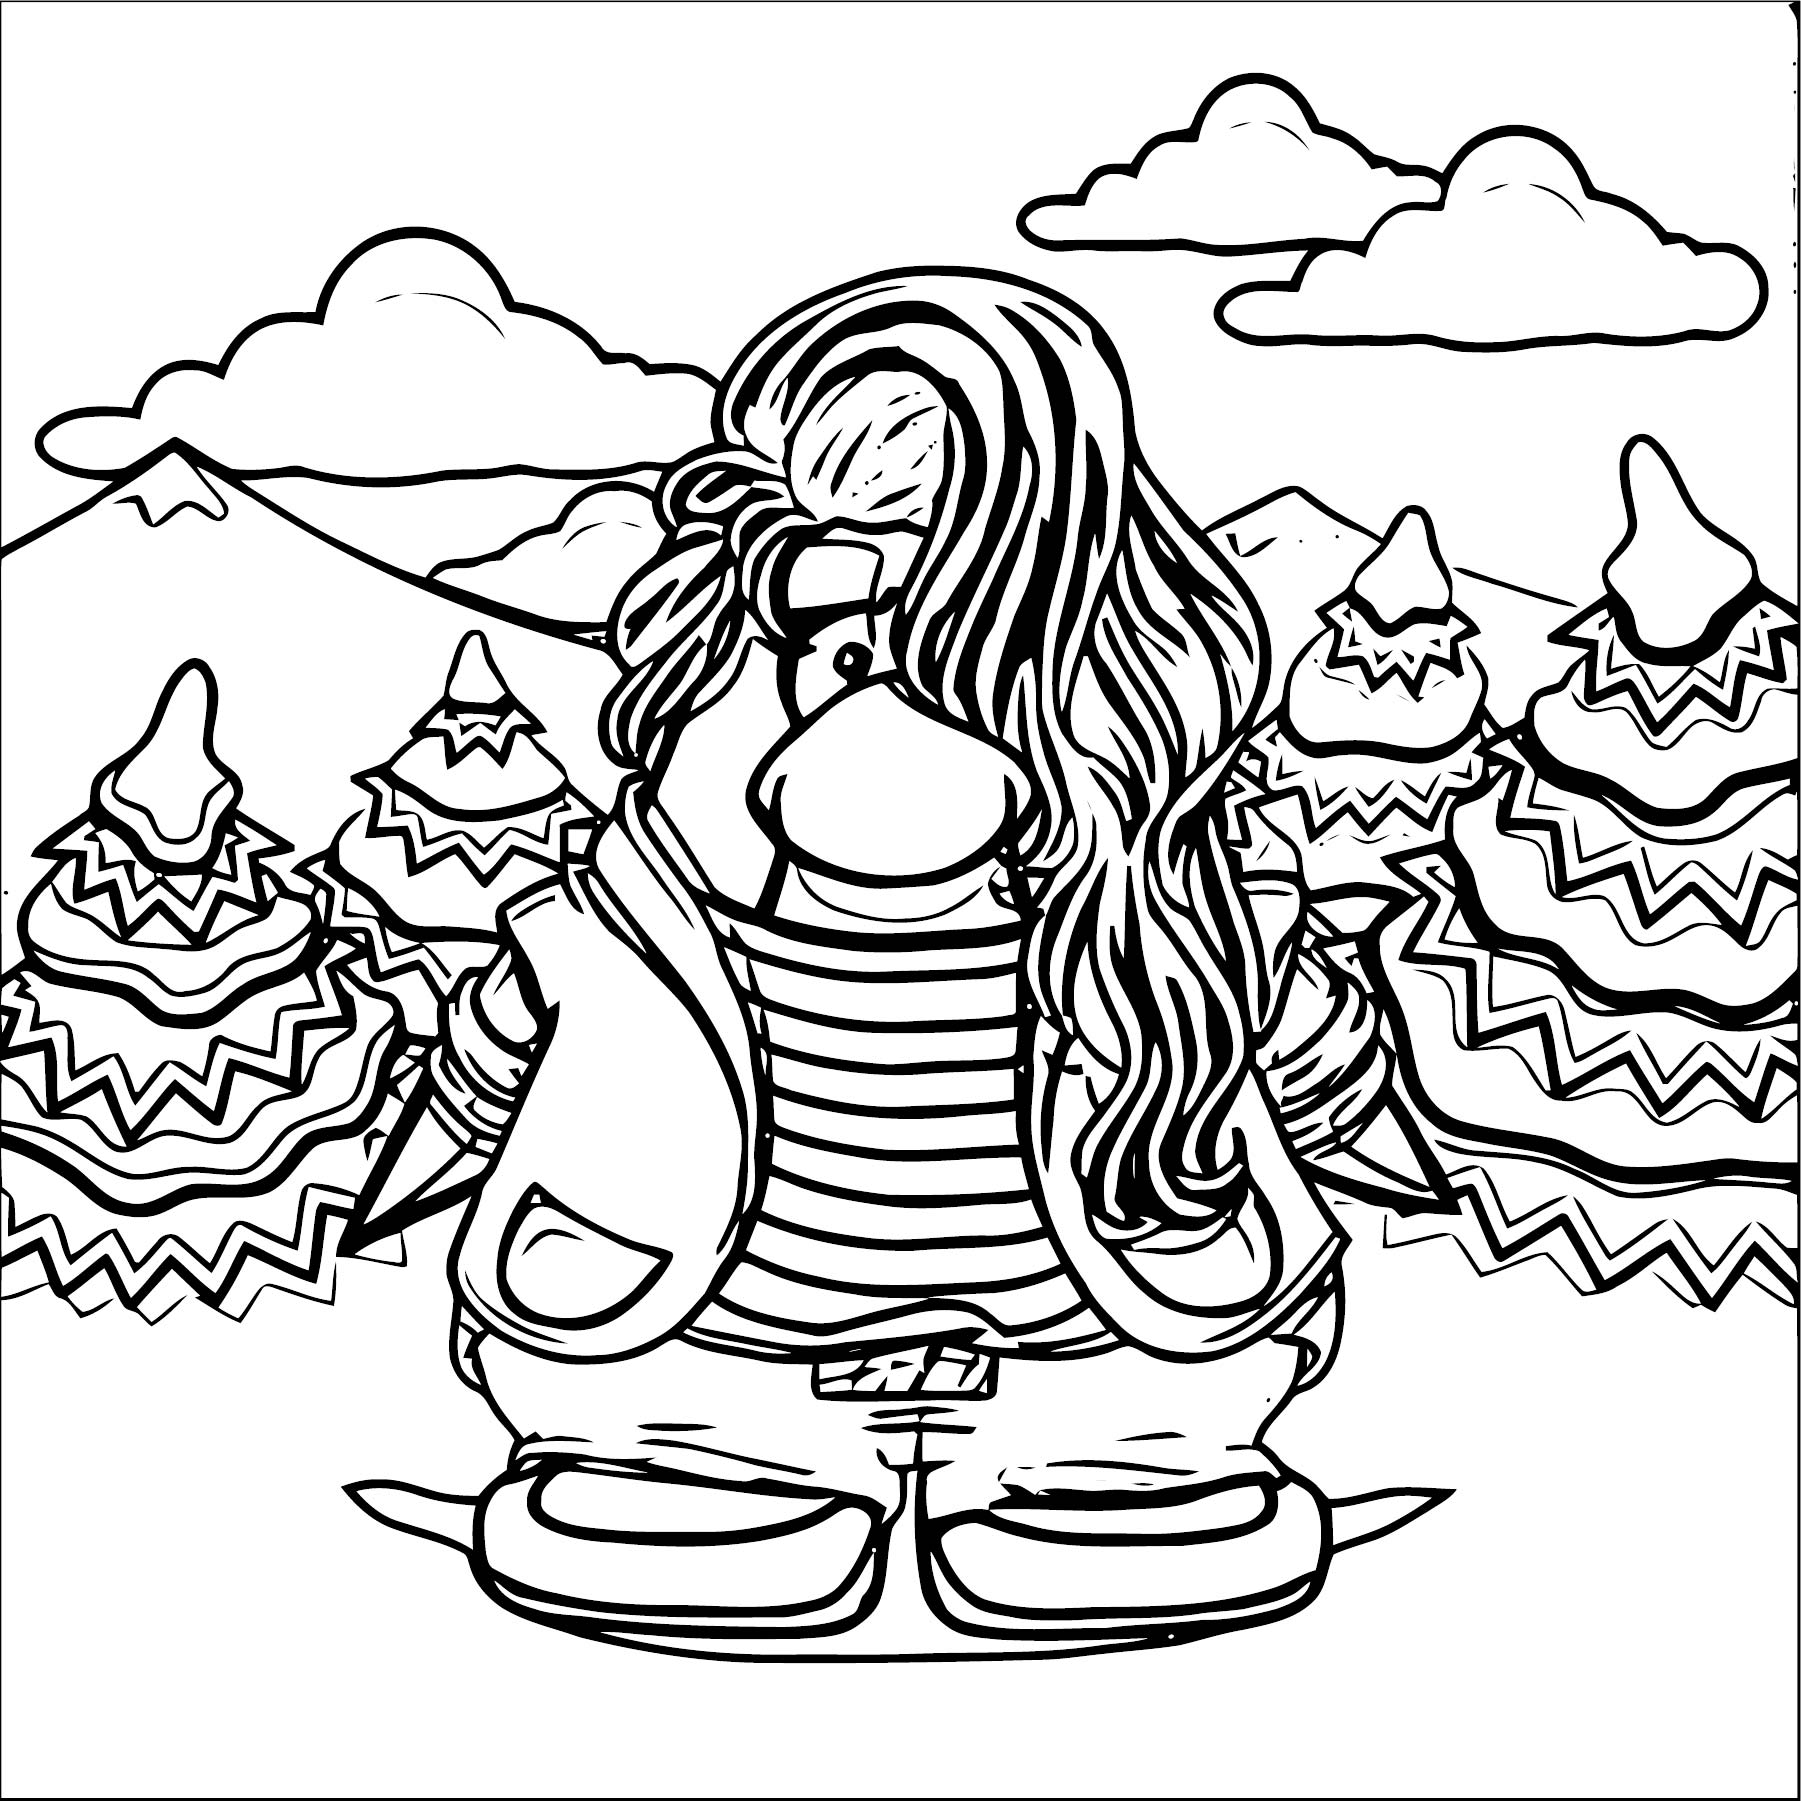 Megg Coloring Page